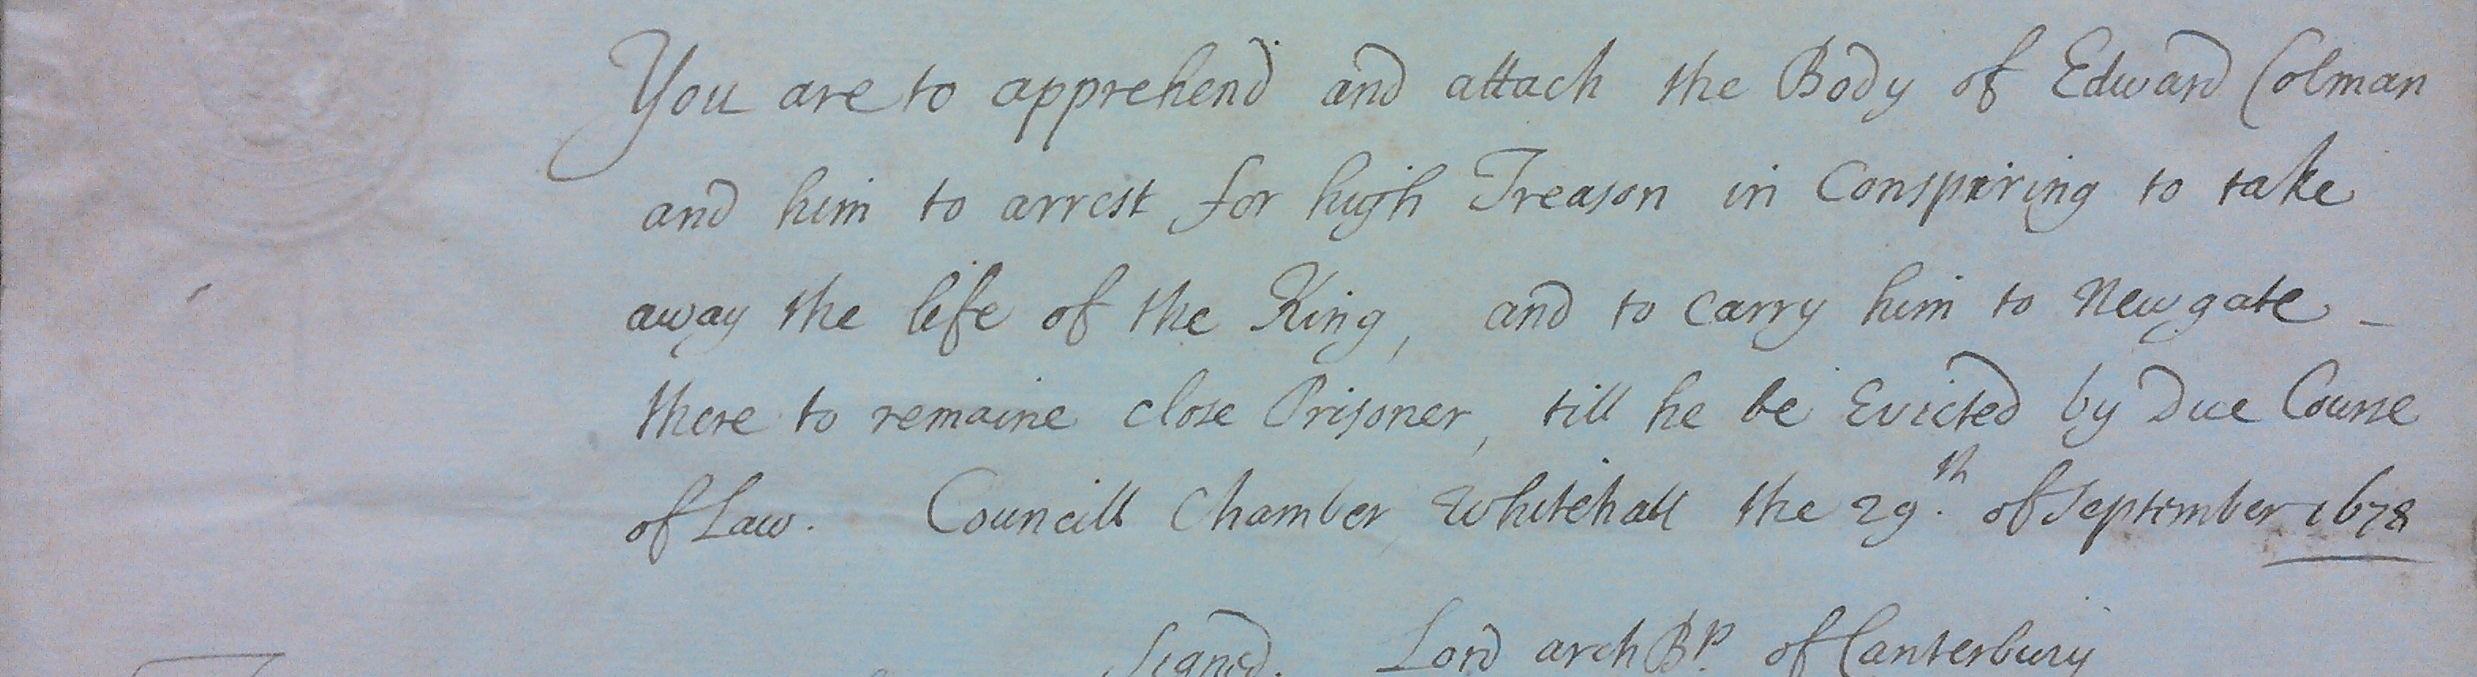 Handwritten warrant for the arrest of Edward Colman, from the Robert Southwell Papers